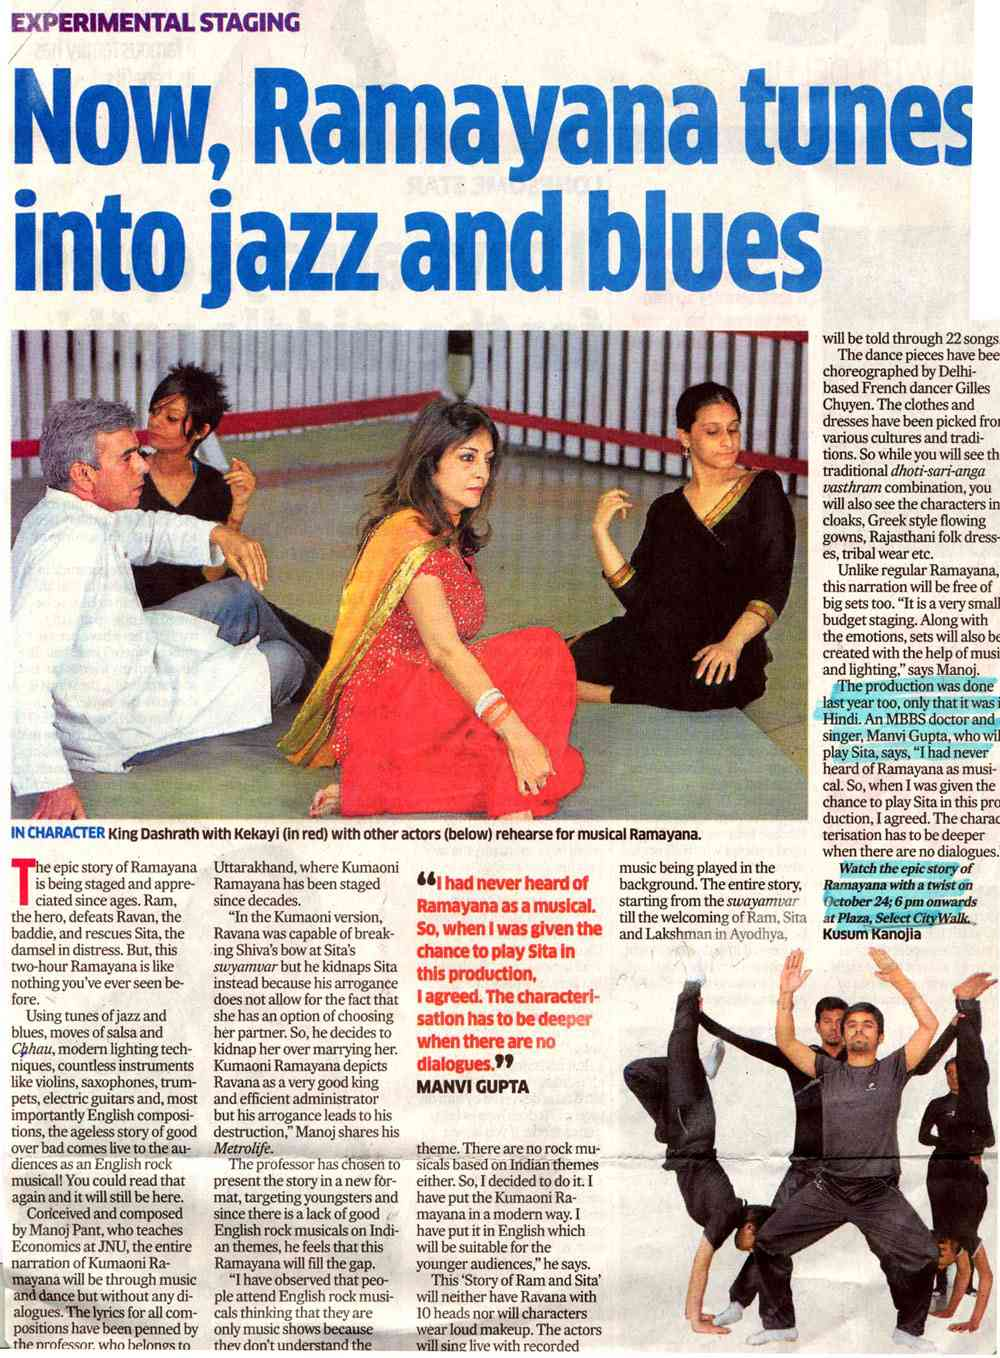 Ramayana Tunes Into Jazz And Blues